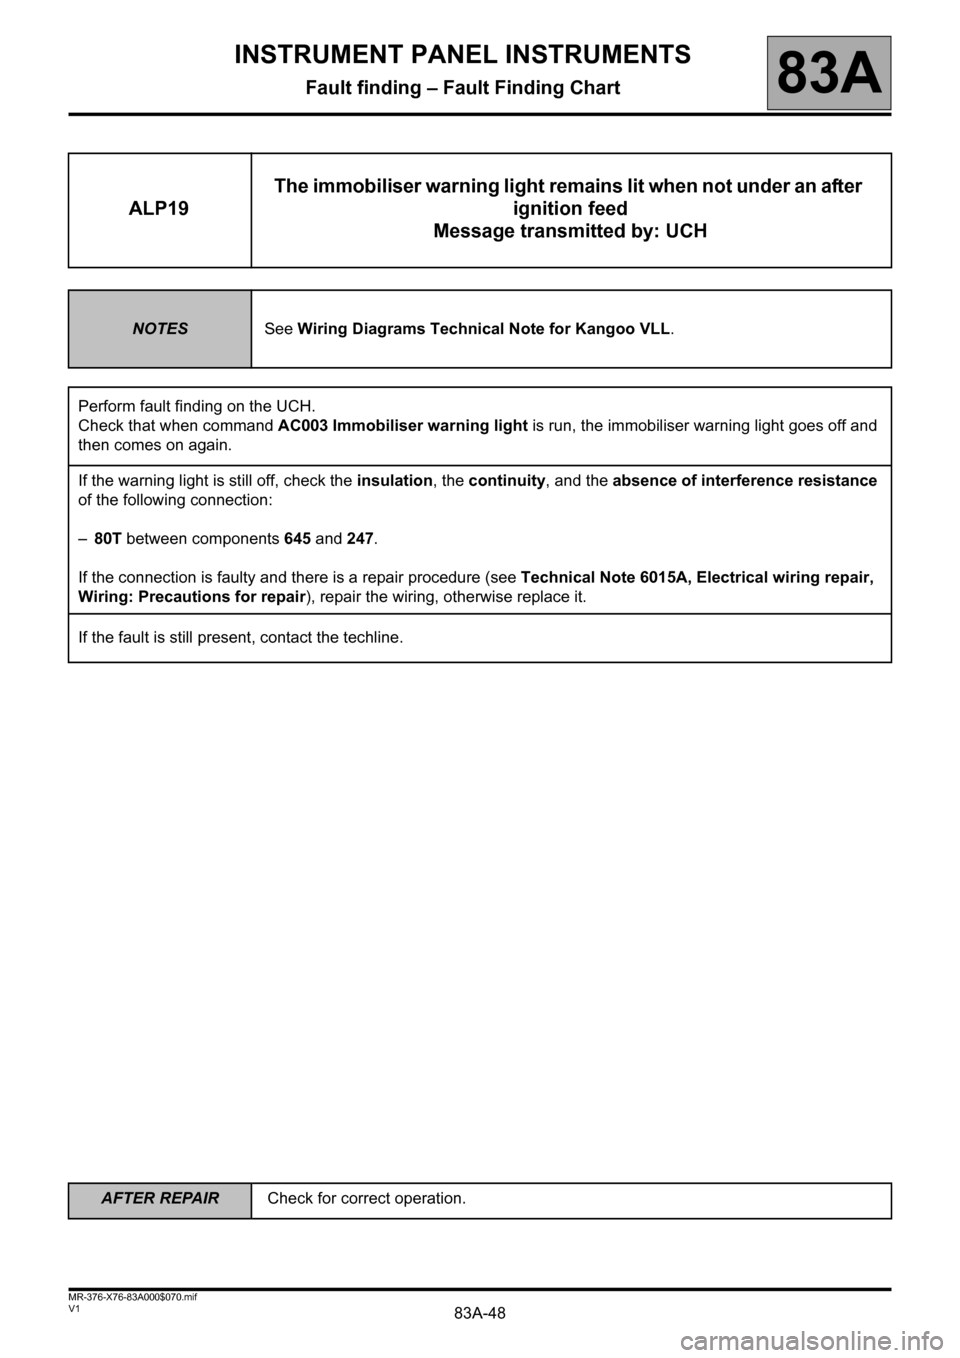 RENAULT KANGOO 2013 X61 / 2.G Instrument Panel Instruments Workshop Manual, Page 48